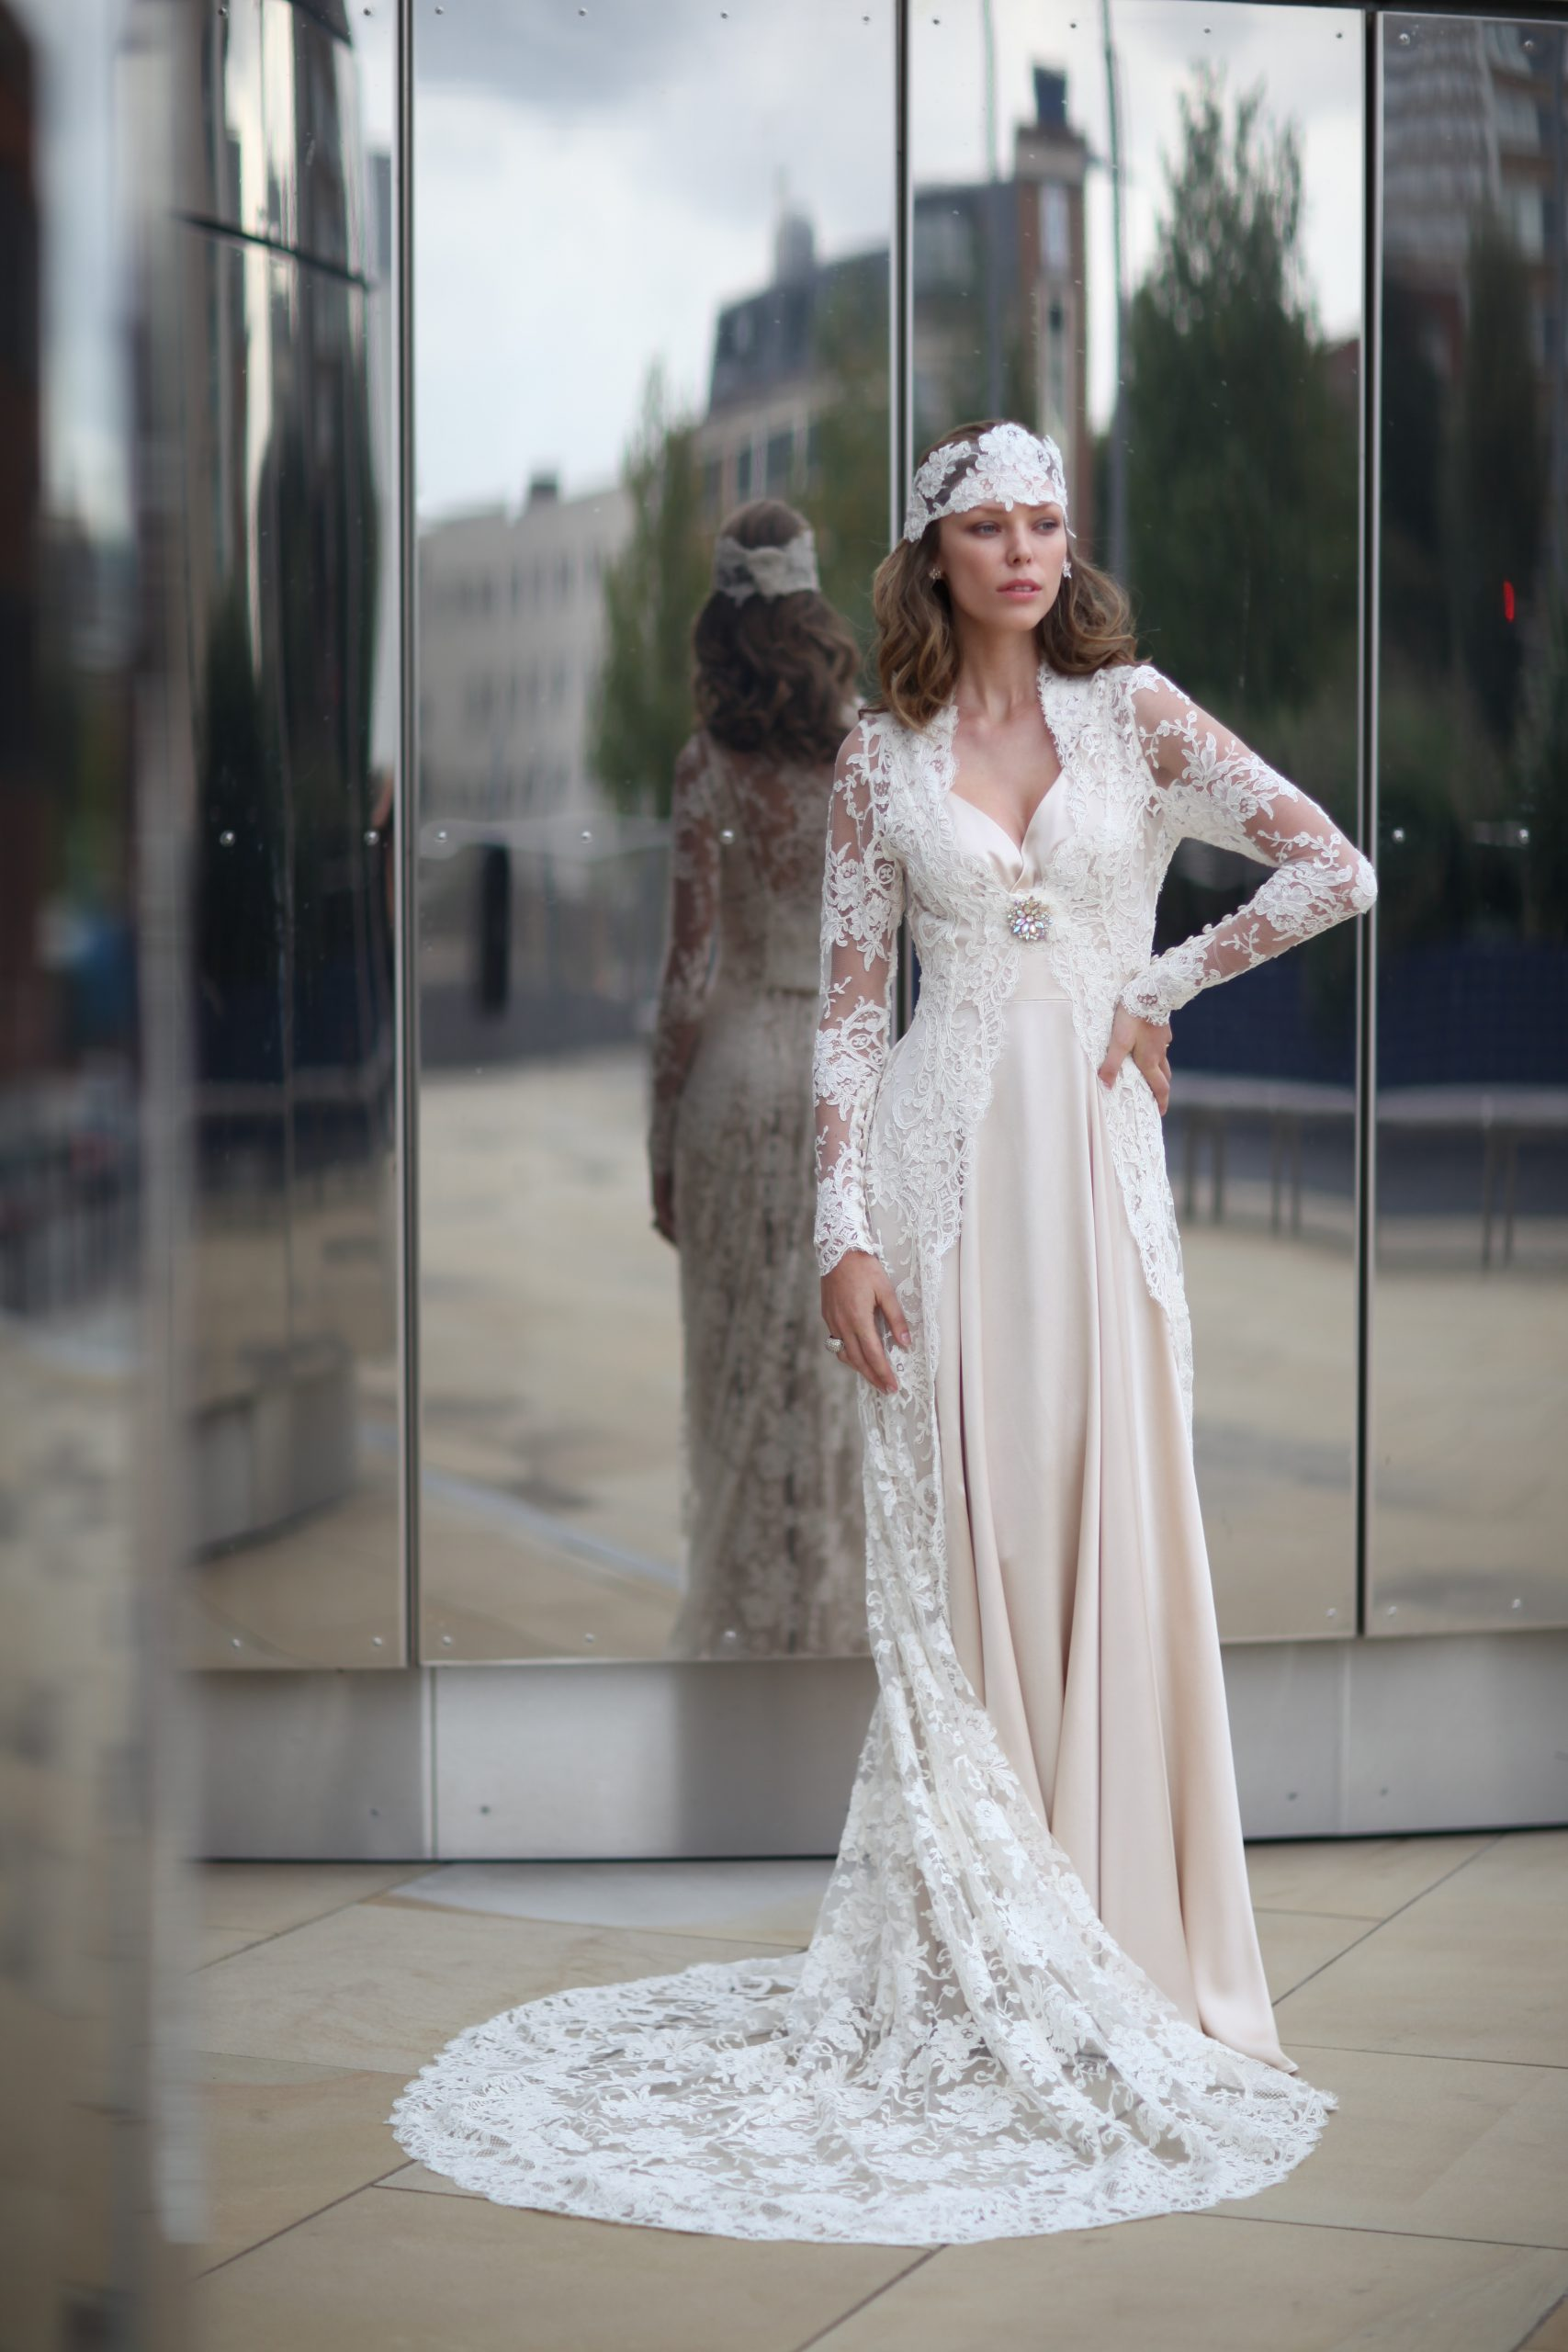 The Harlow Dress and The Versailles Lace Coat